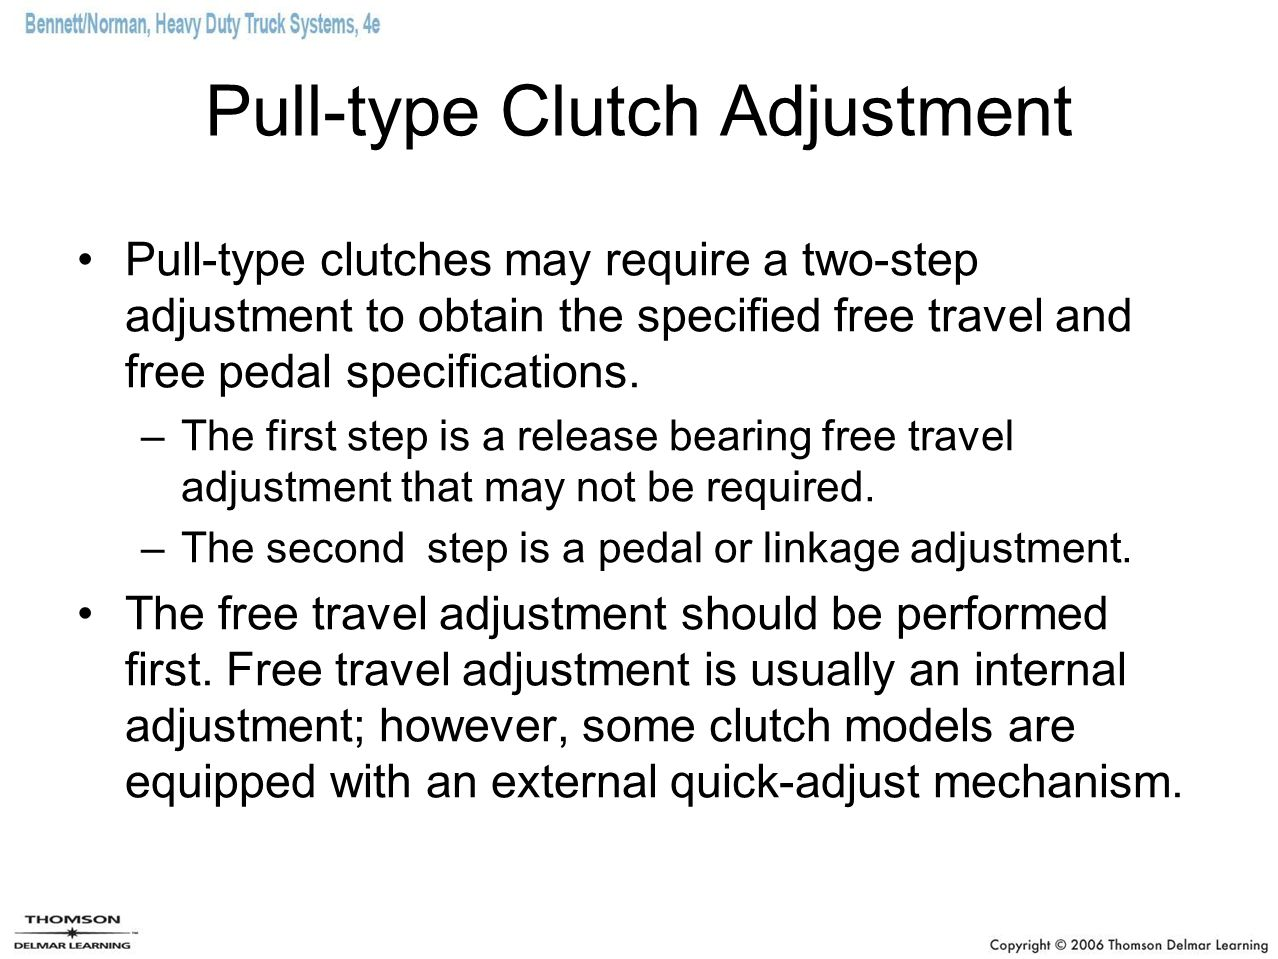 Pull-type Clutch Adjustment